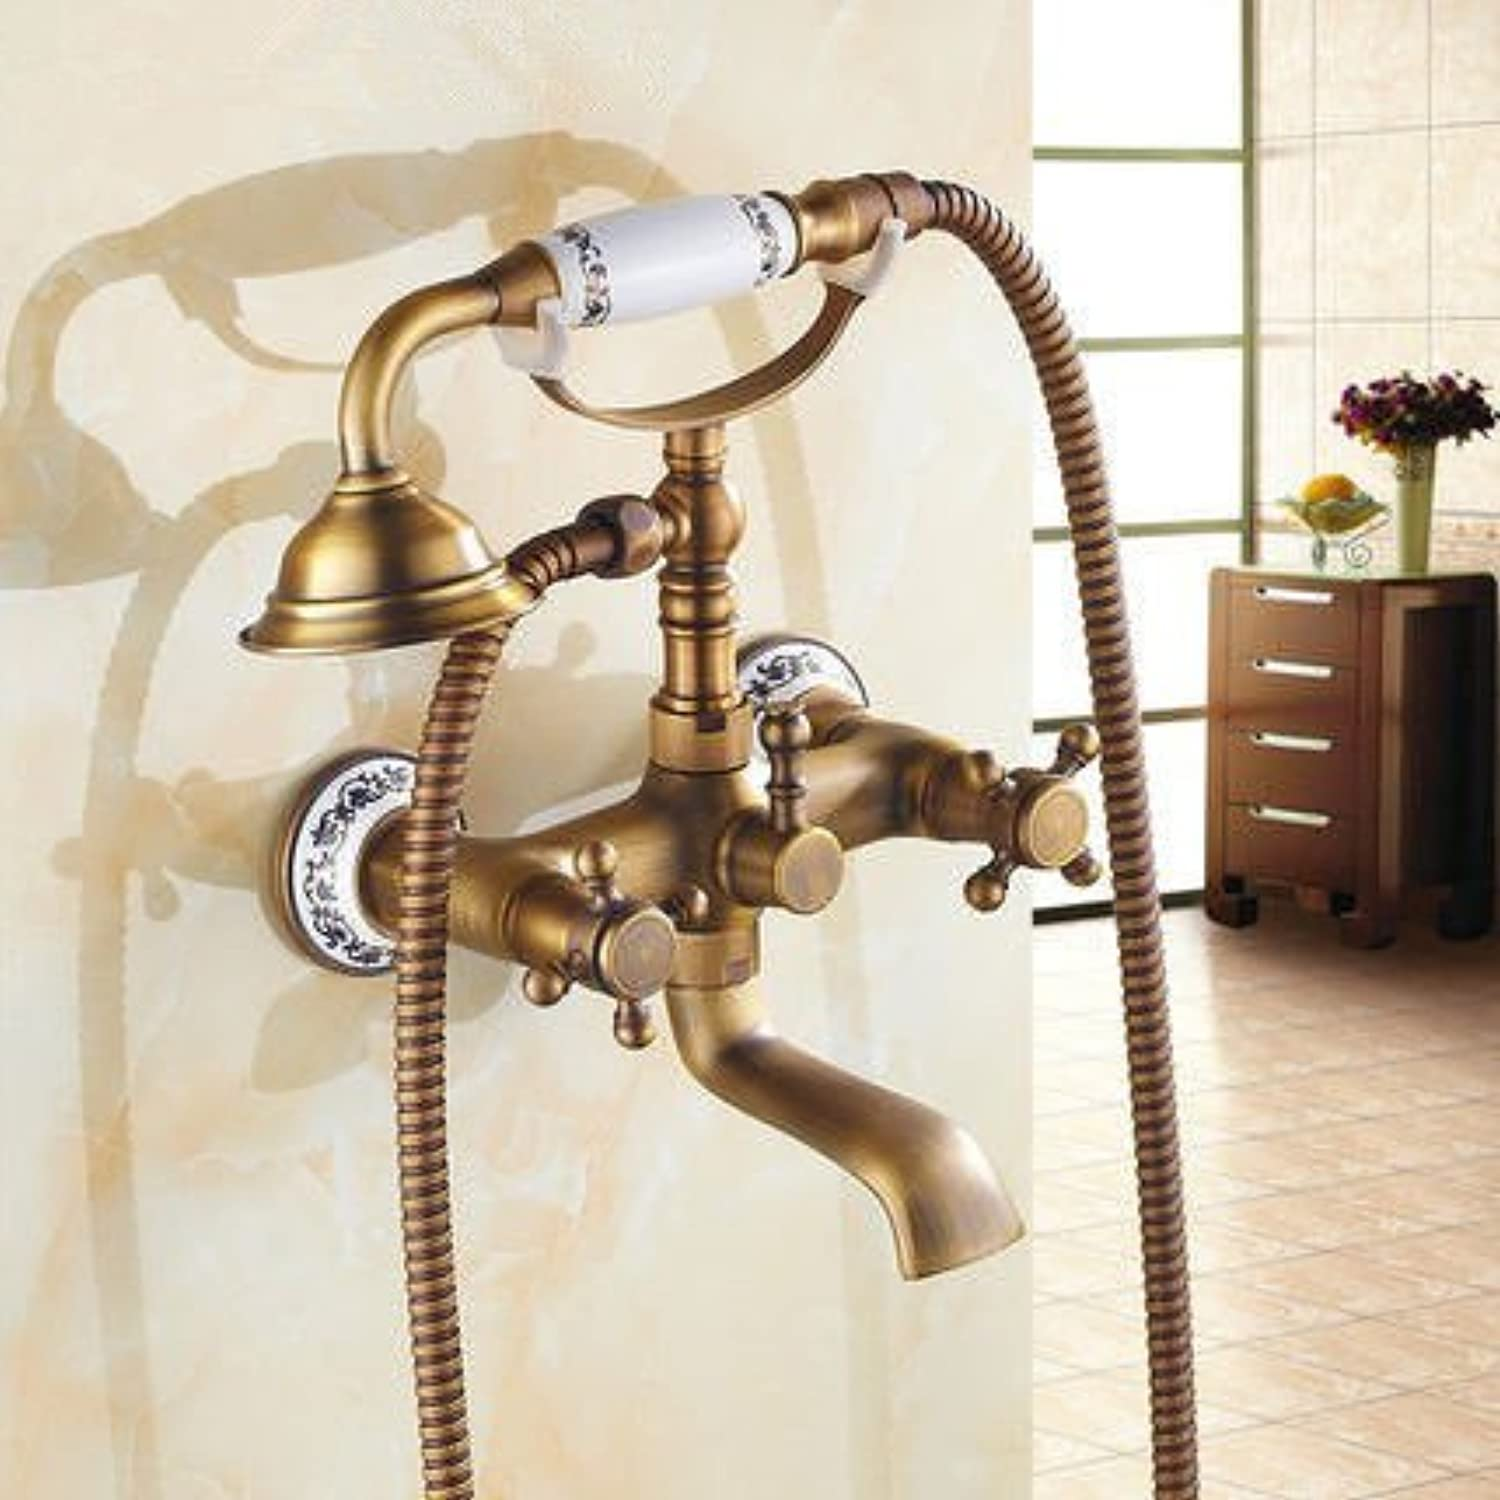 DOJOF Bathroom Sink Faucet Basin Mixer Tap AntiqueHandheld Showers Retro Brushed Shower Brass Hot and Cold Water Basin Sink Tap Bathroom Bar Faucet